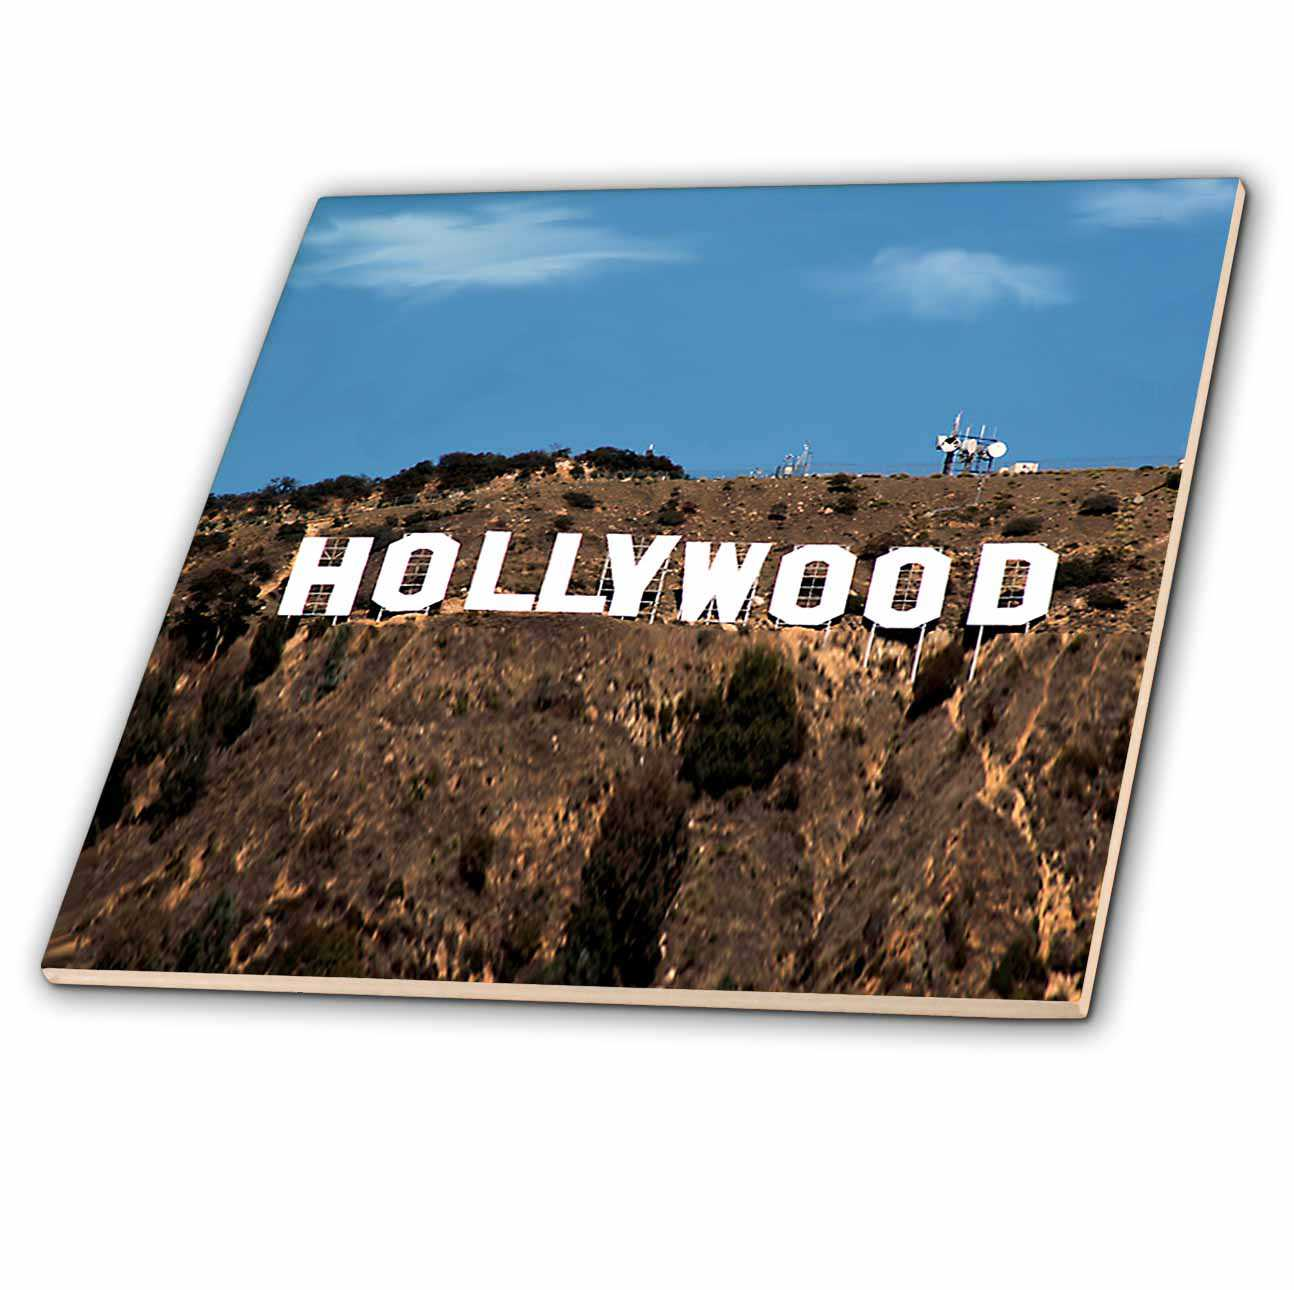 3dRose Hollywood - Ceramic Tile, 6-inch